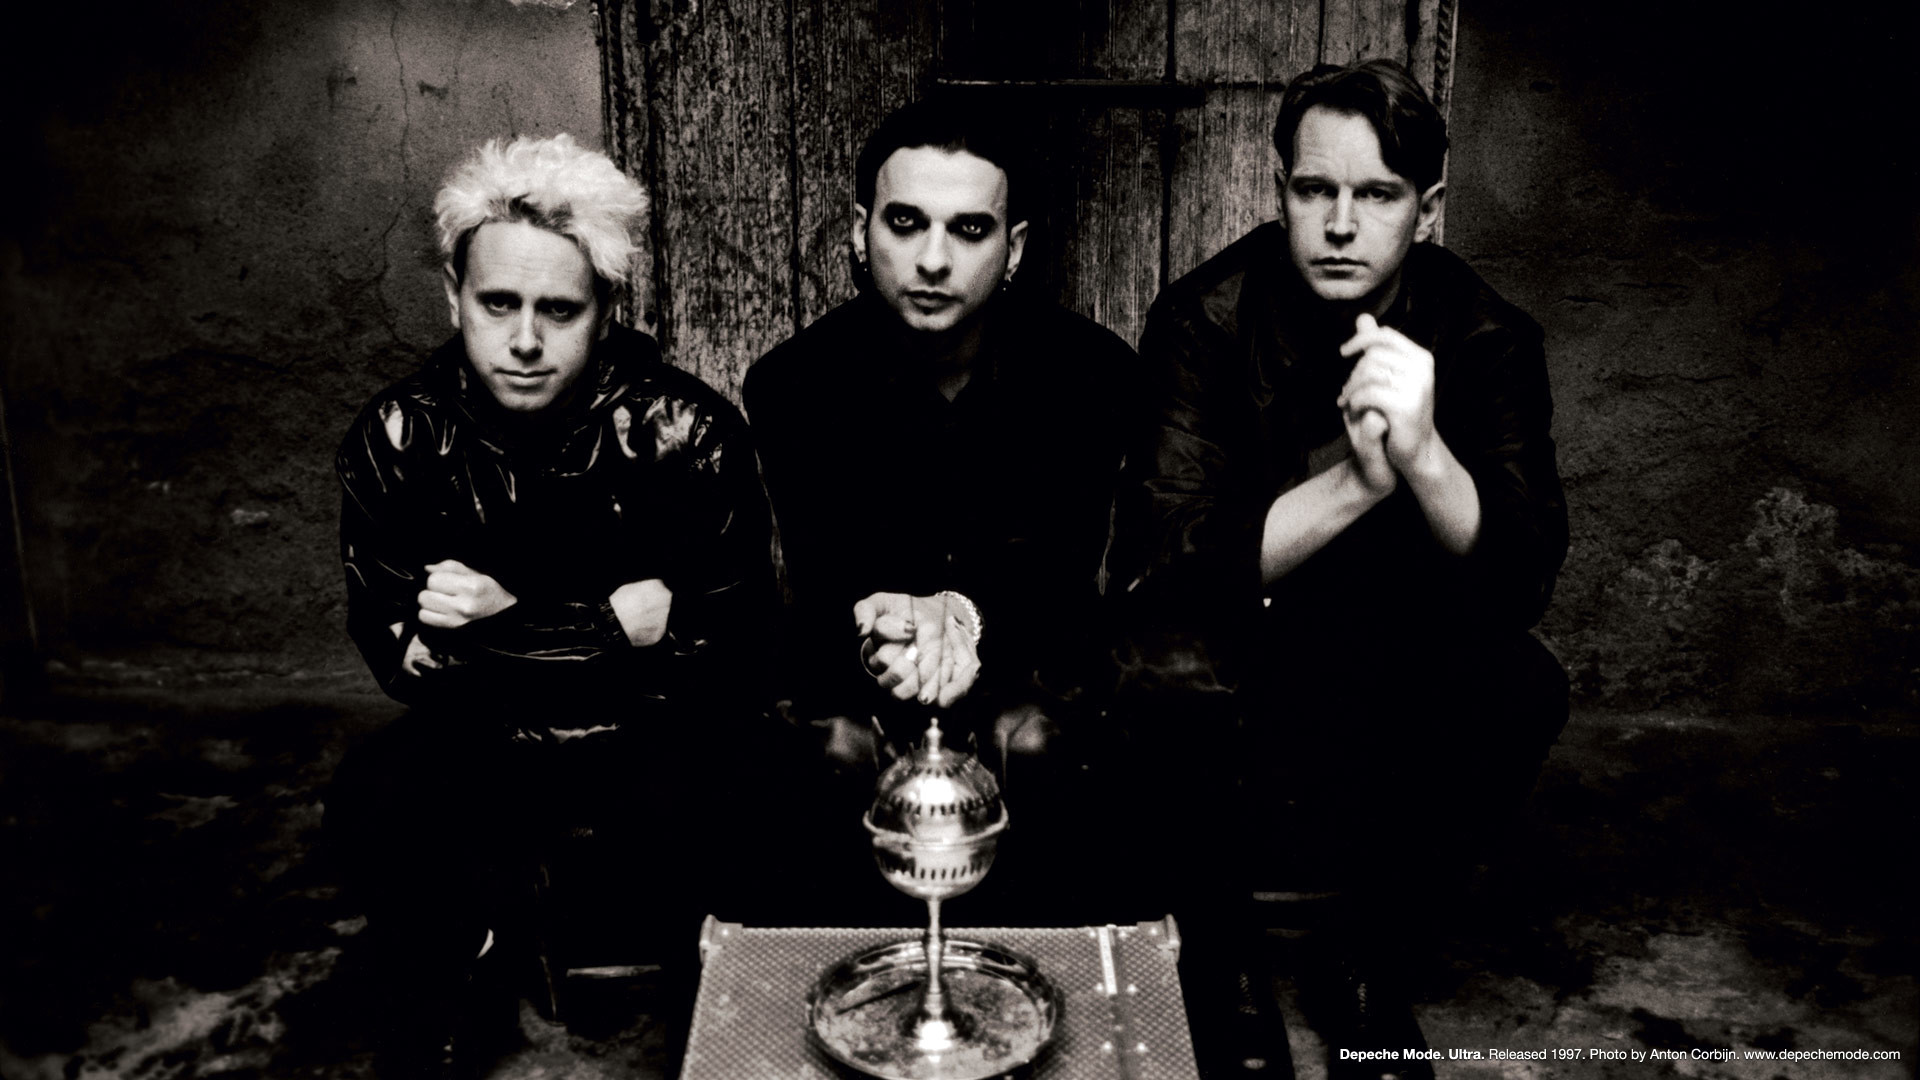 1920x1080 Depeche Mode Обои HD Wallpaper | Wallpapers | Pinterest | Depeche mode and  Hd wallpaper